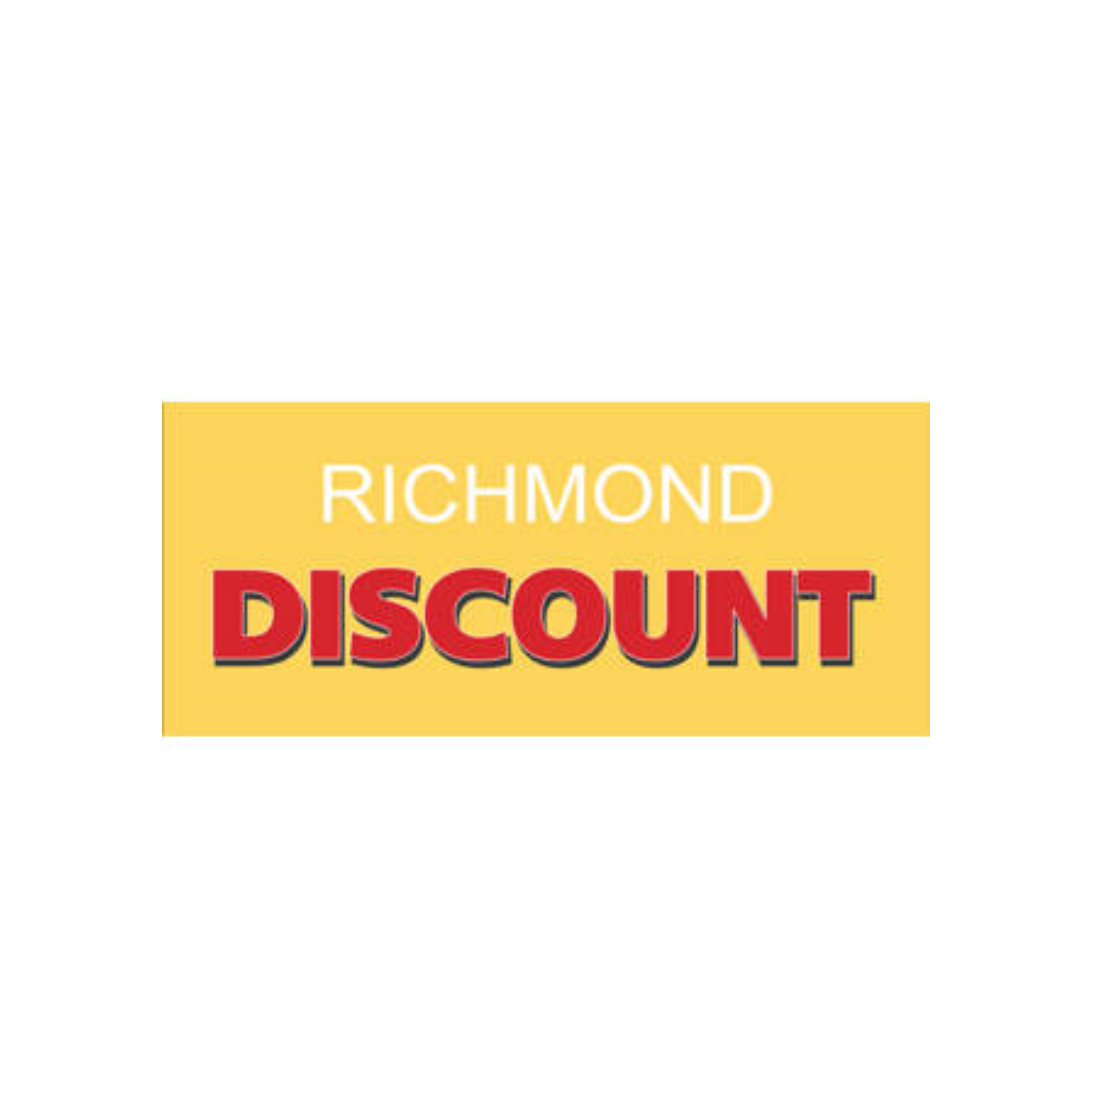 richmond discount.png